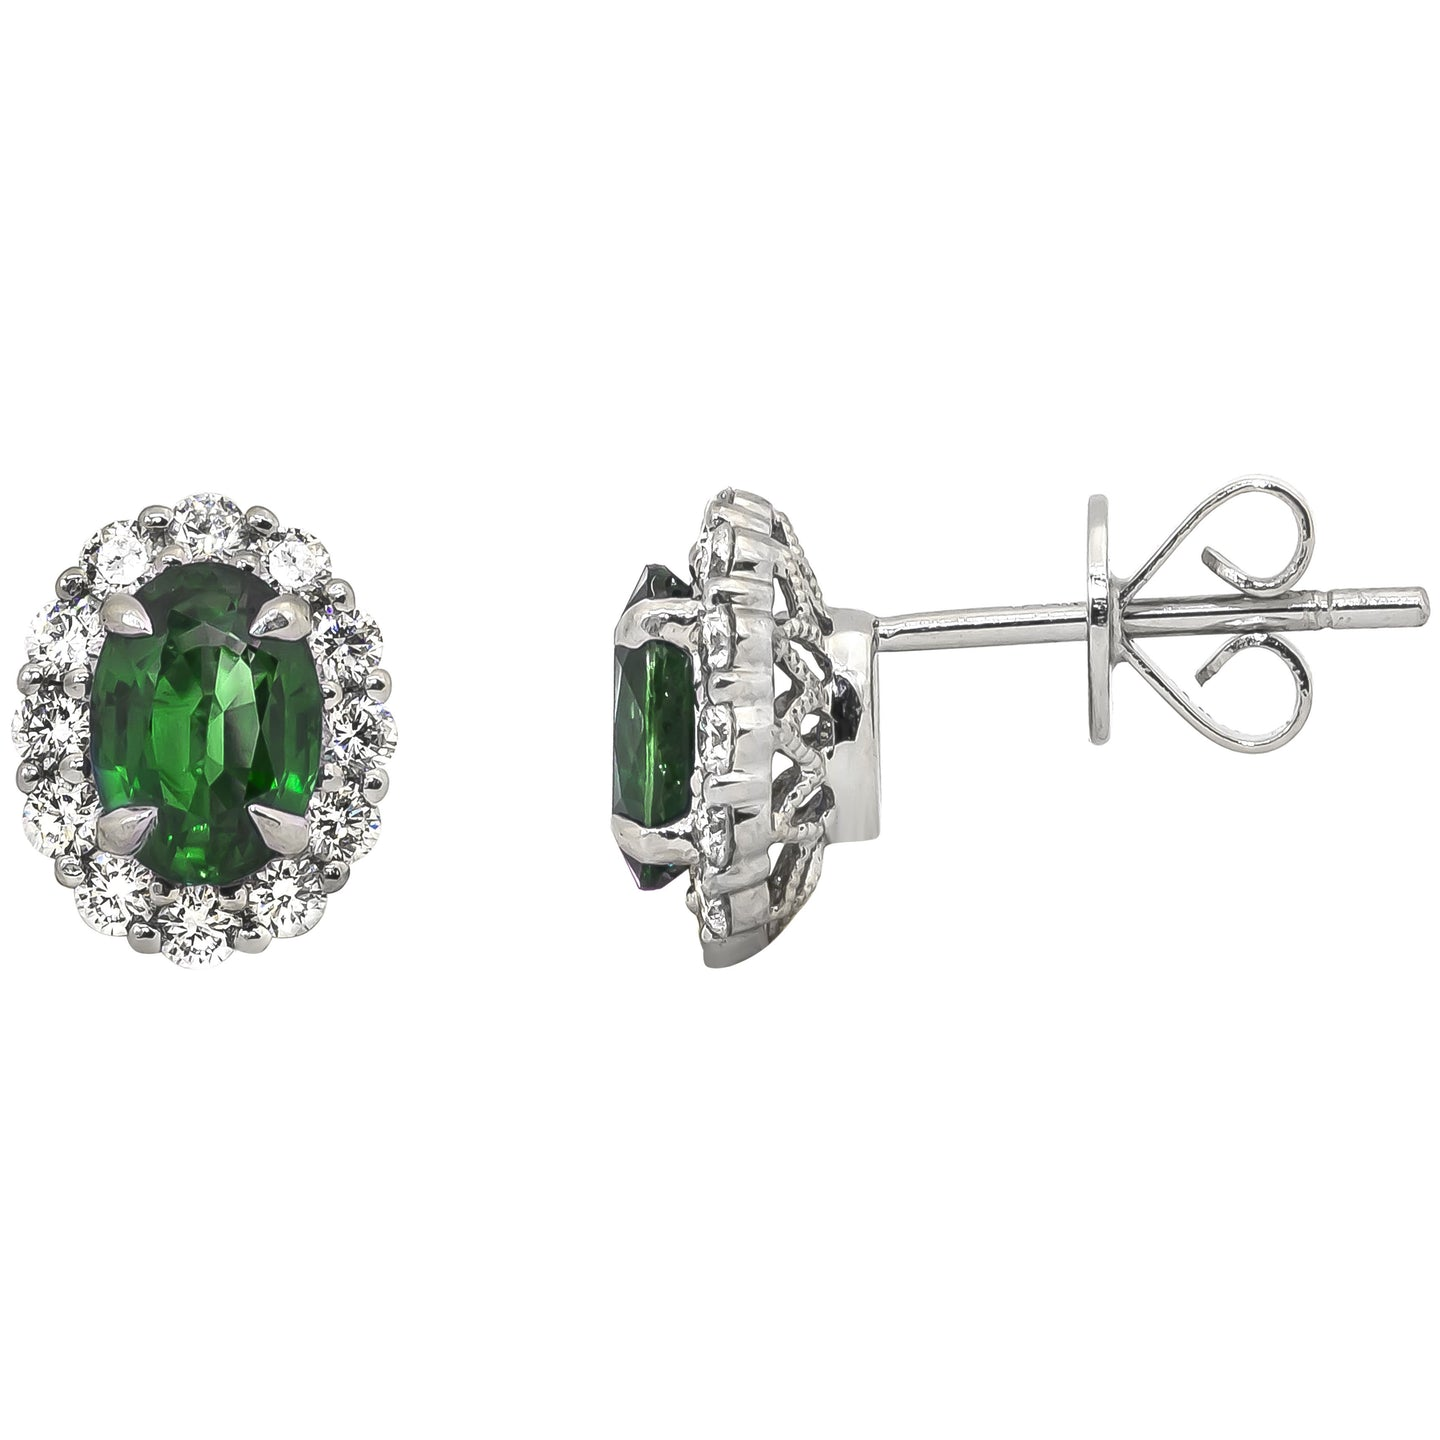 Sabel Collection 14K White Gold Oval Emerald and Diamond Halo Stud Earrings